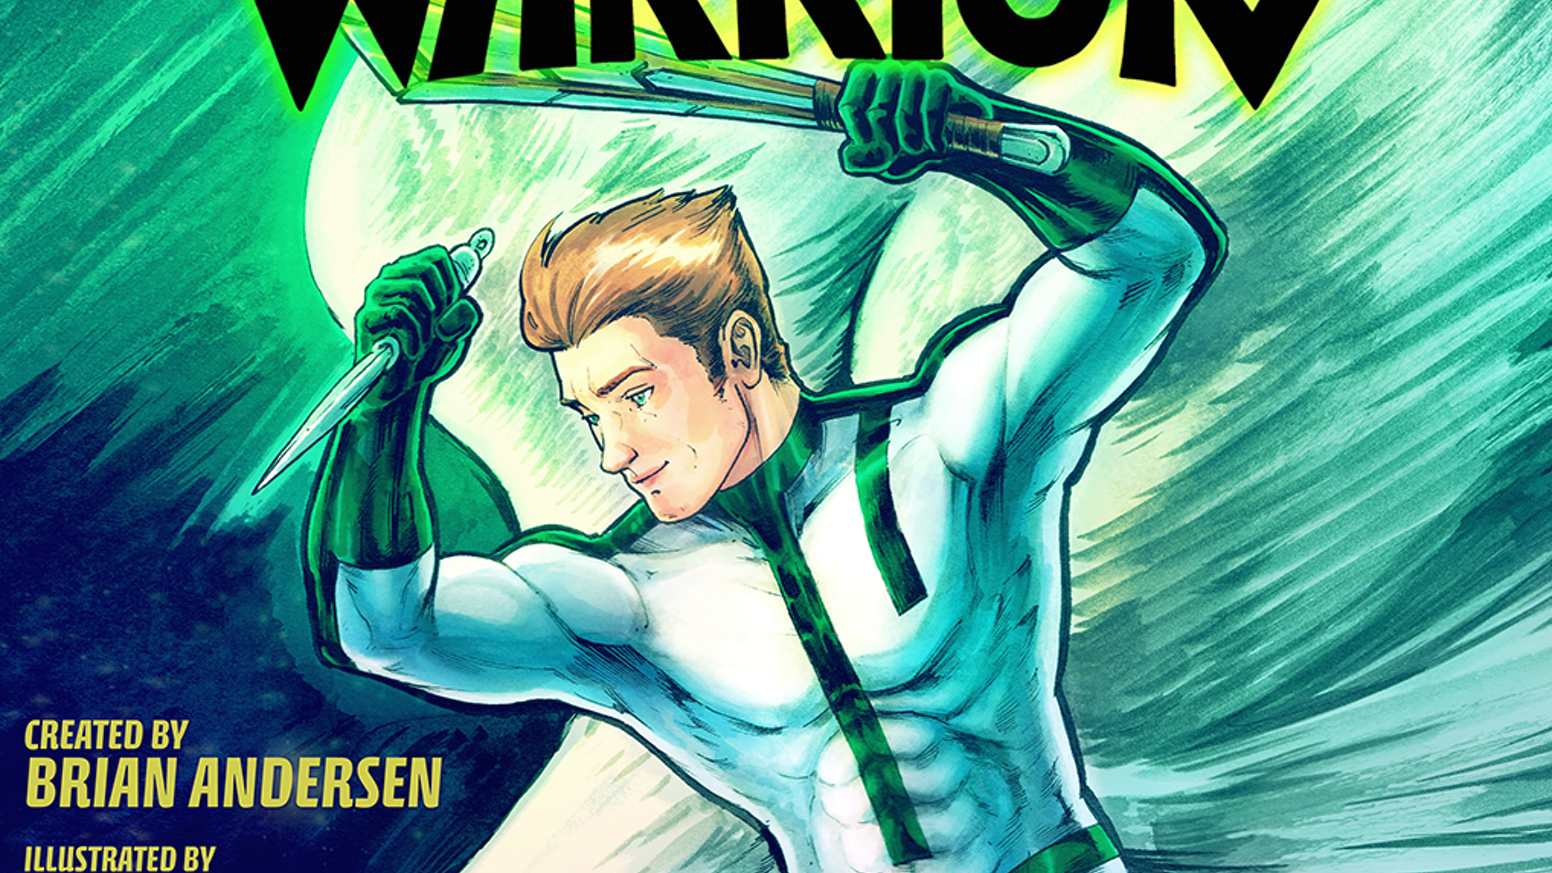 'Stripling Warrior' is an exciting, fun new comic book about the world's first Gay Mormon Superhero.